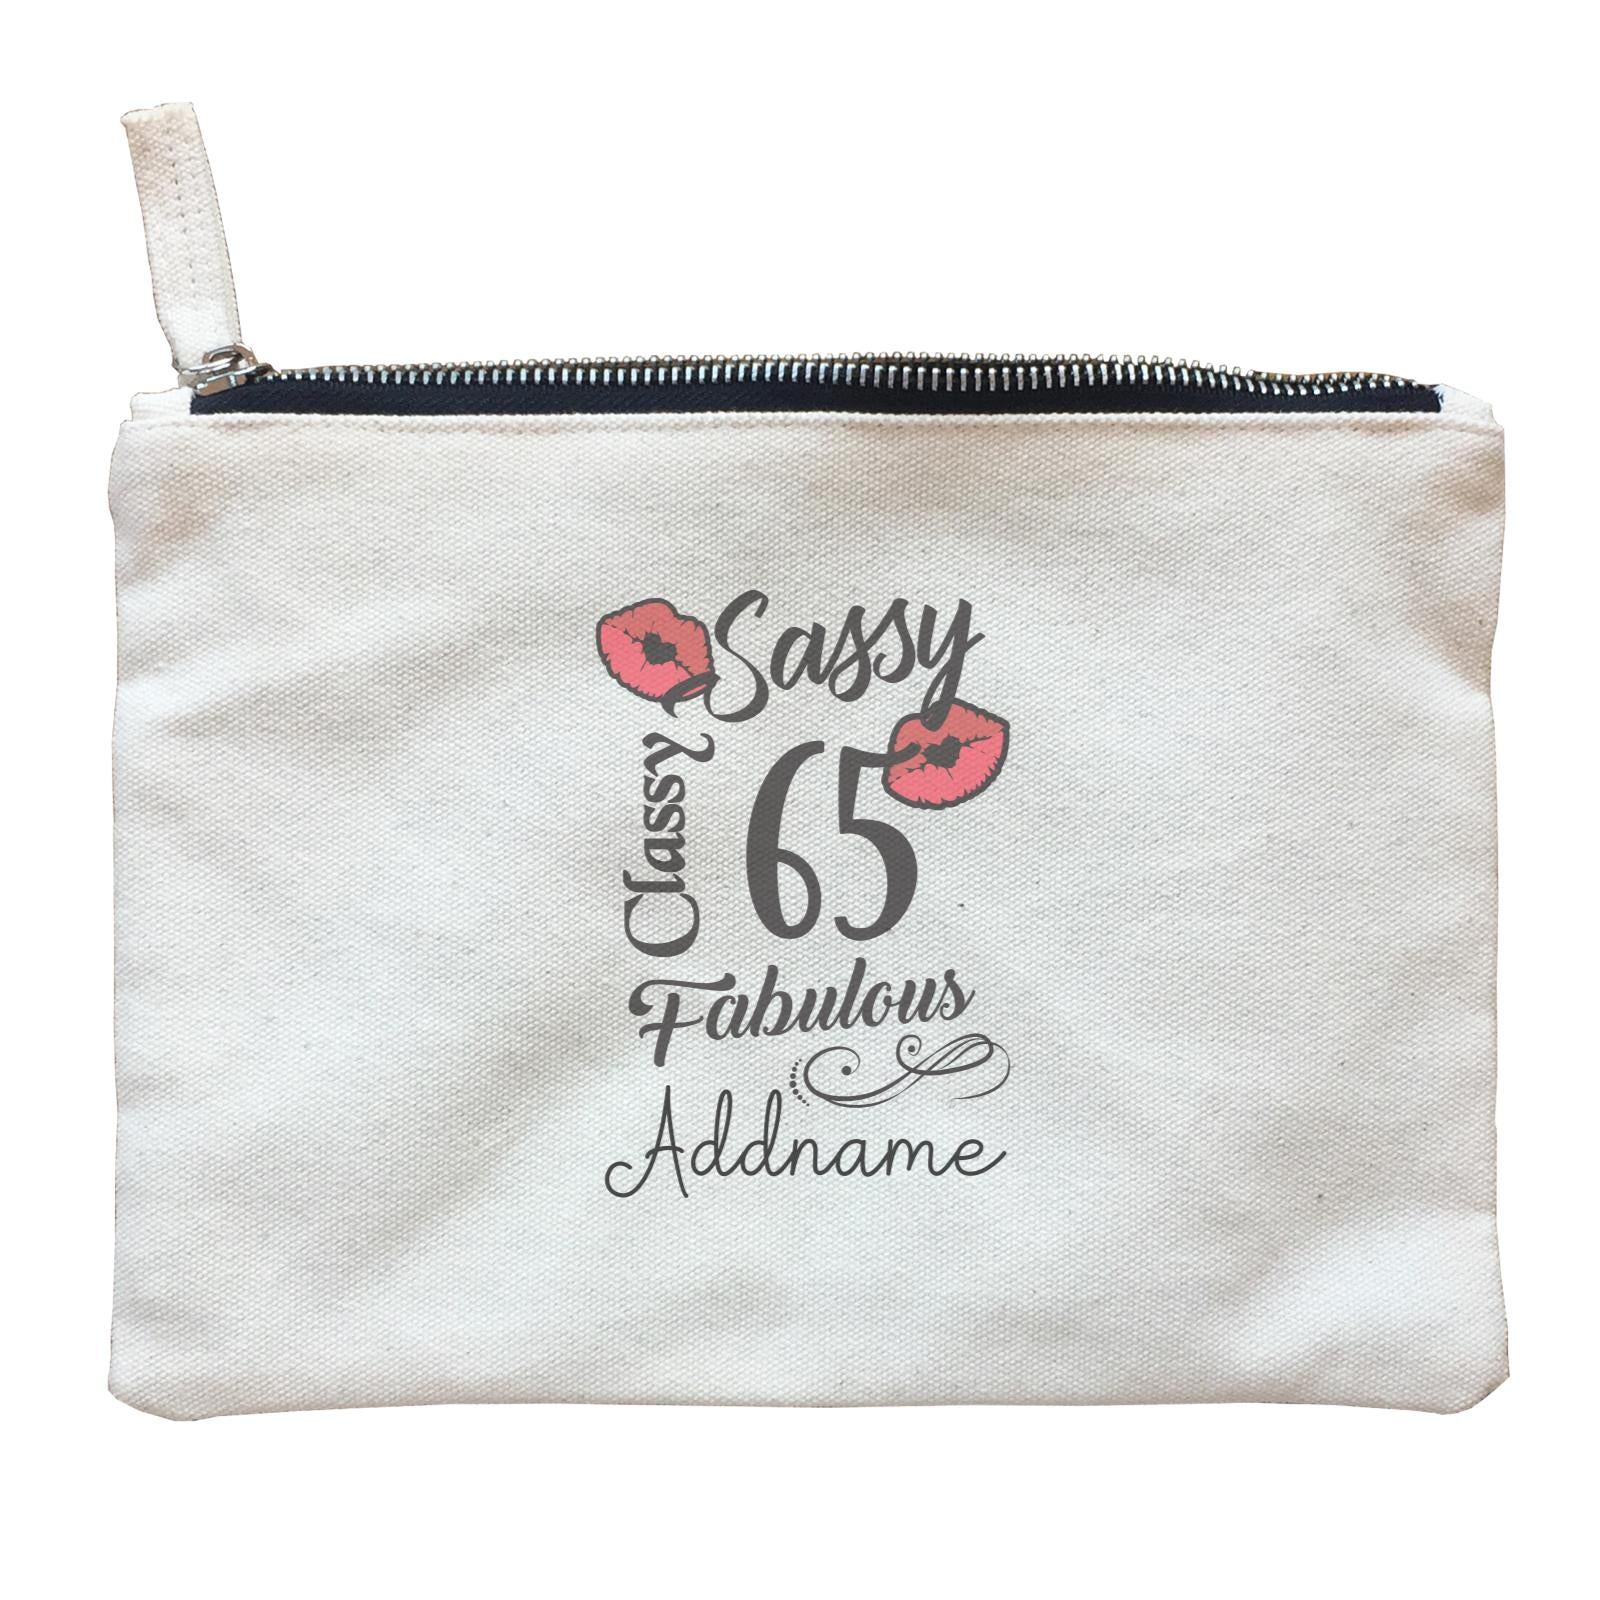 Personalize It Birthyear Sassy Classy and Fabulous with Addname and Add Year Zipper Pouch